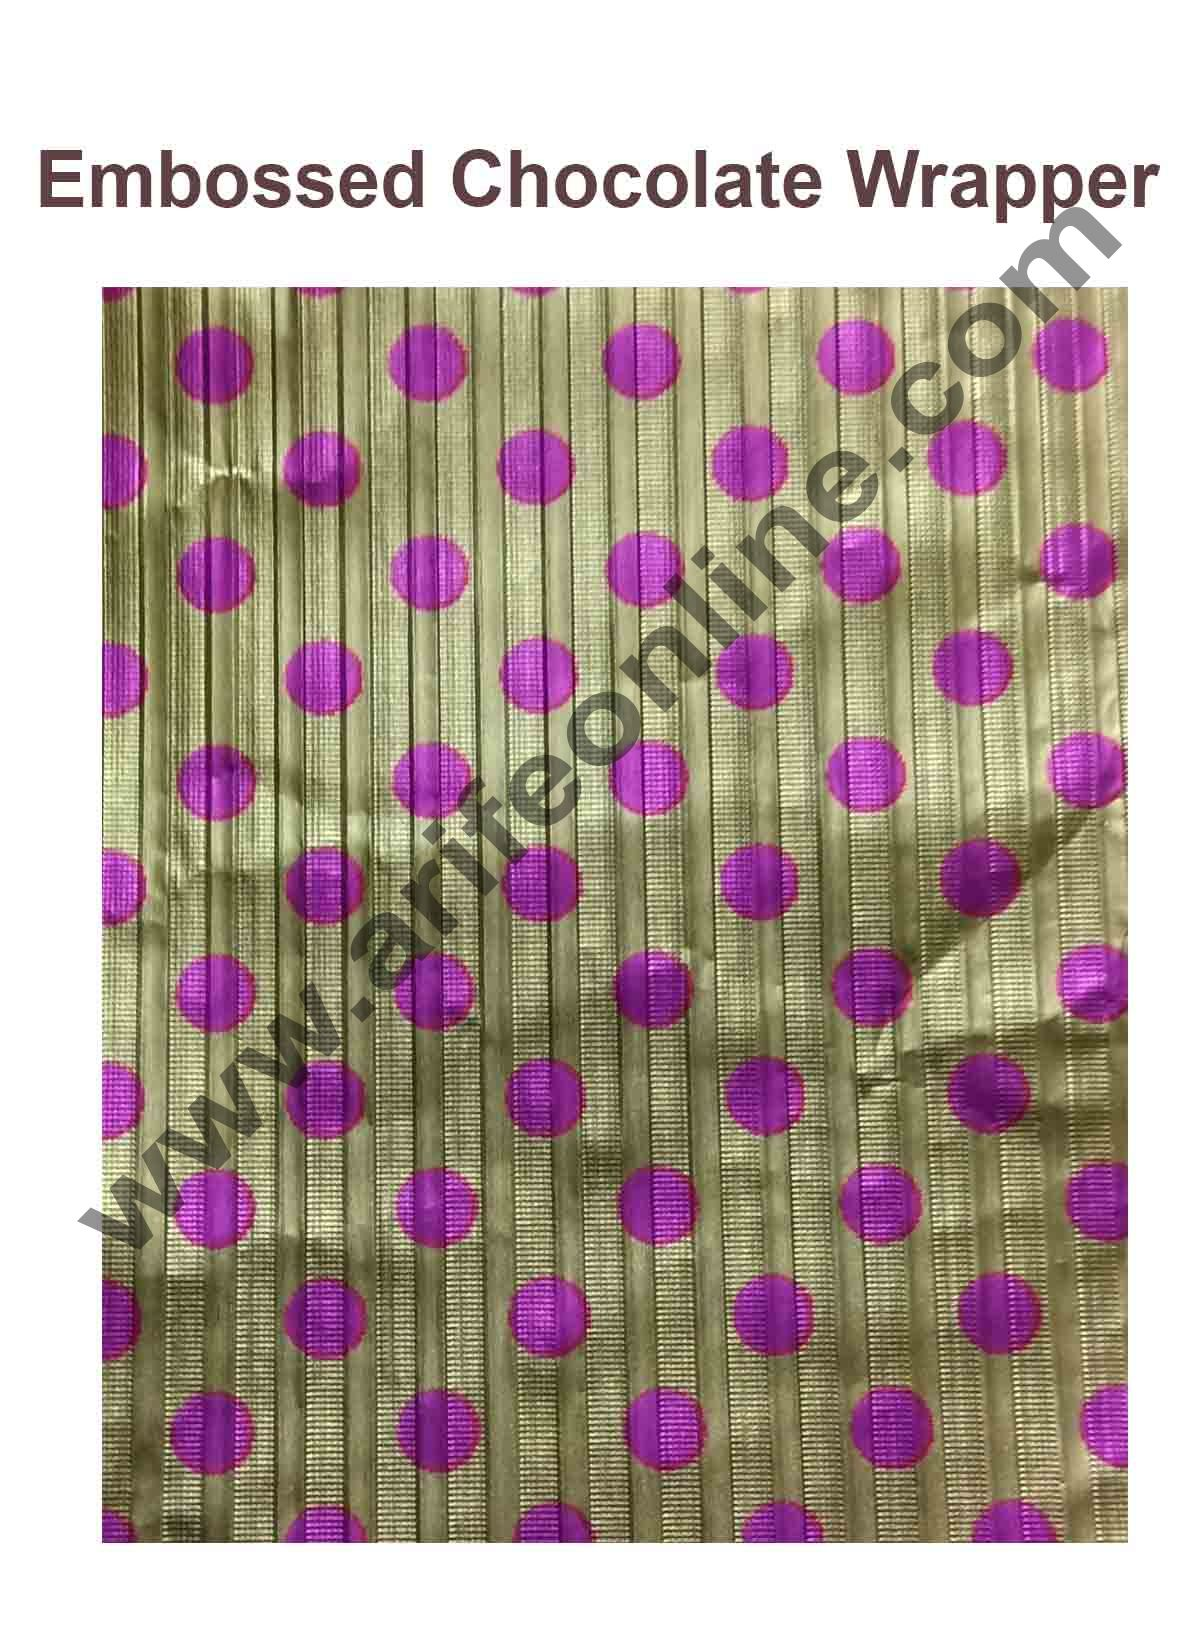 Cake Decor Chocolate Wrappering Foil, Embossed Chocolate Wrapper, 200 Sheets - 10in x 7in - Dotted Light Gold Pink